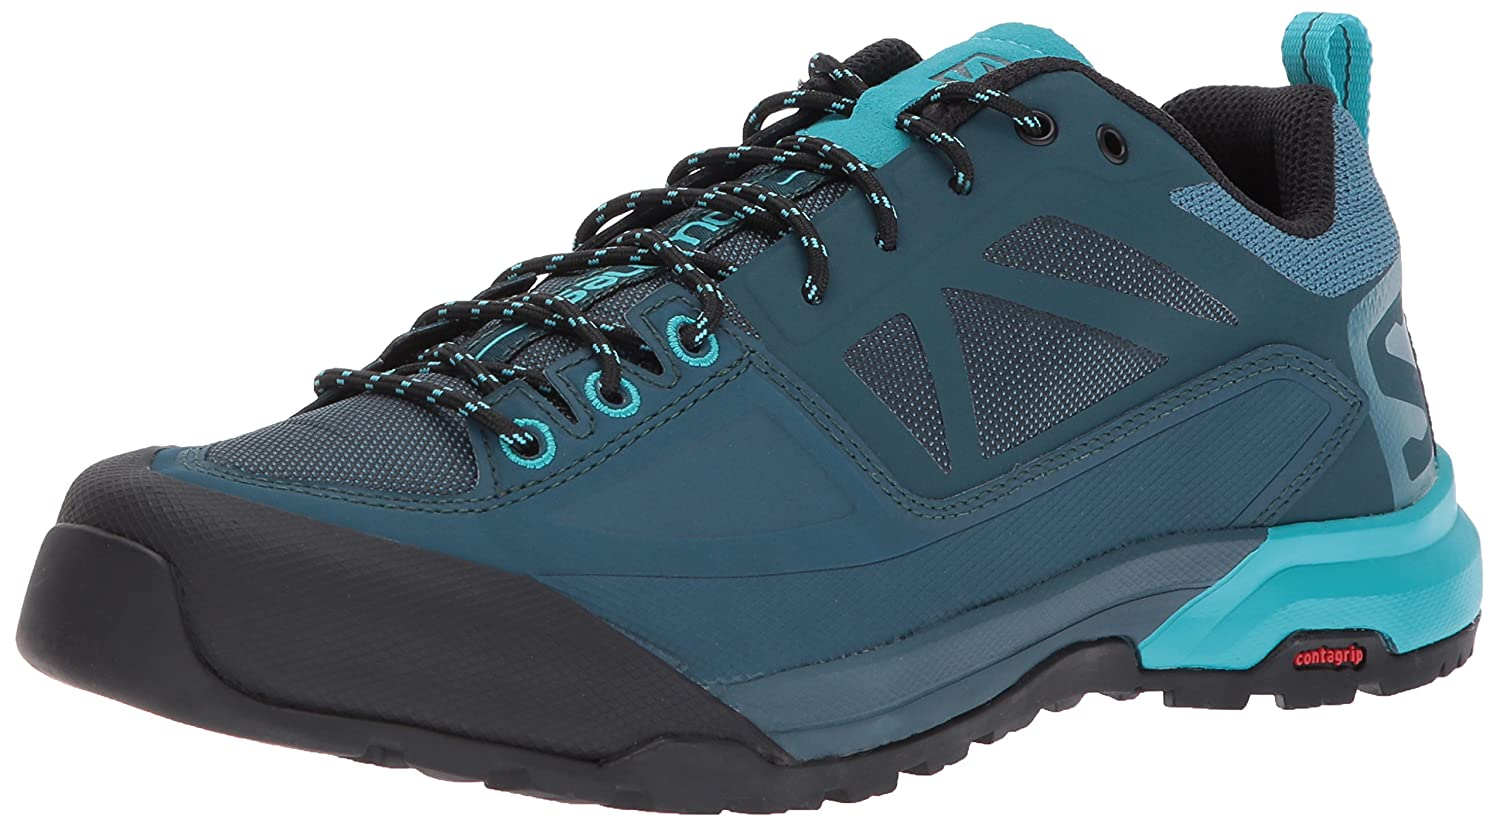 Salomon Women's X Alp Spry W Mountaineering Boot B01N1J0PTT 9 M US|Mallard Blue/Reflecting Pond/Blue Bird